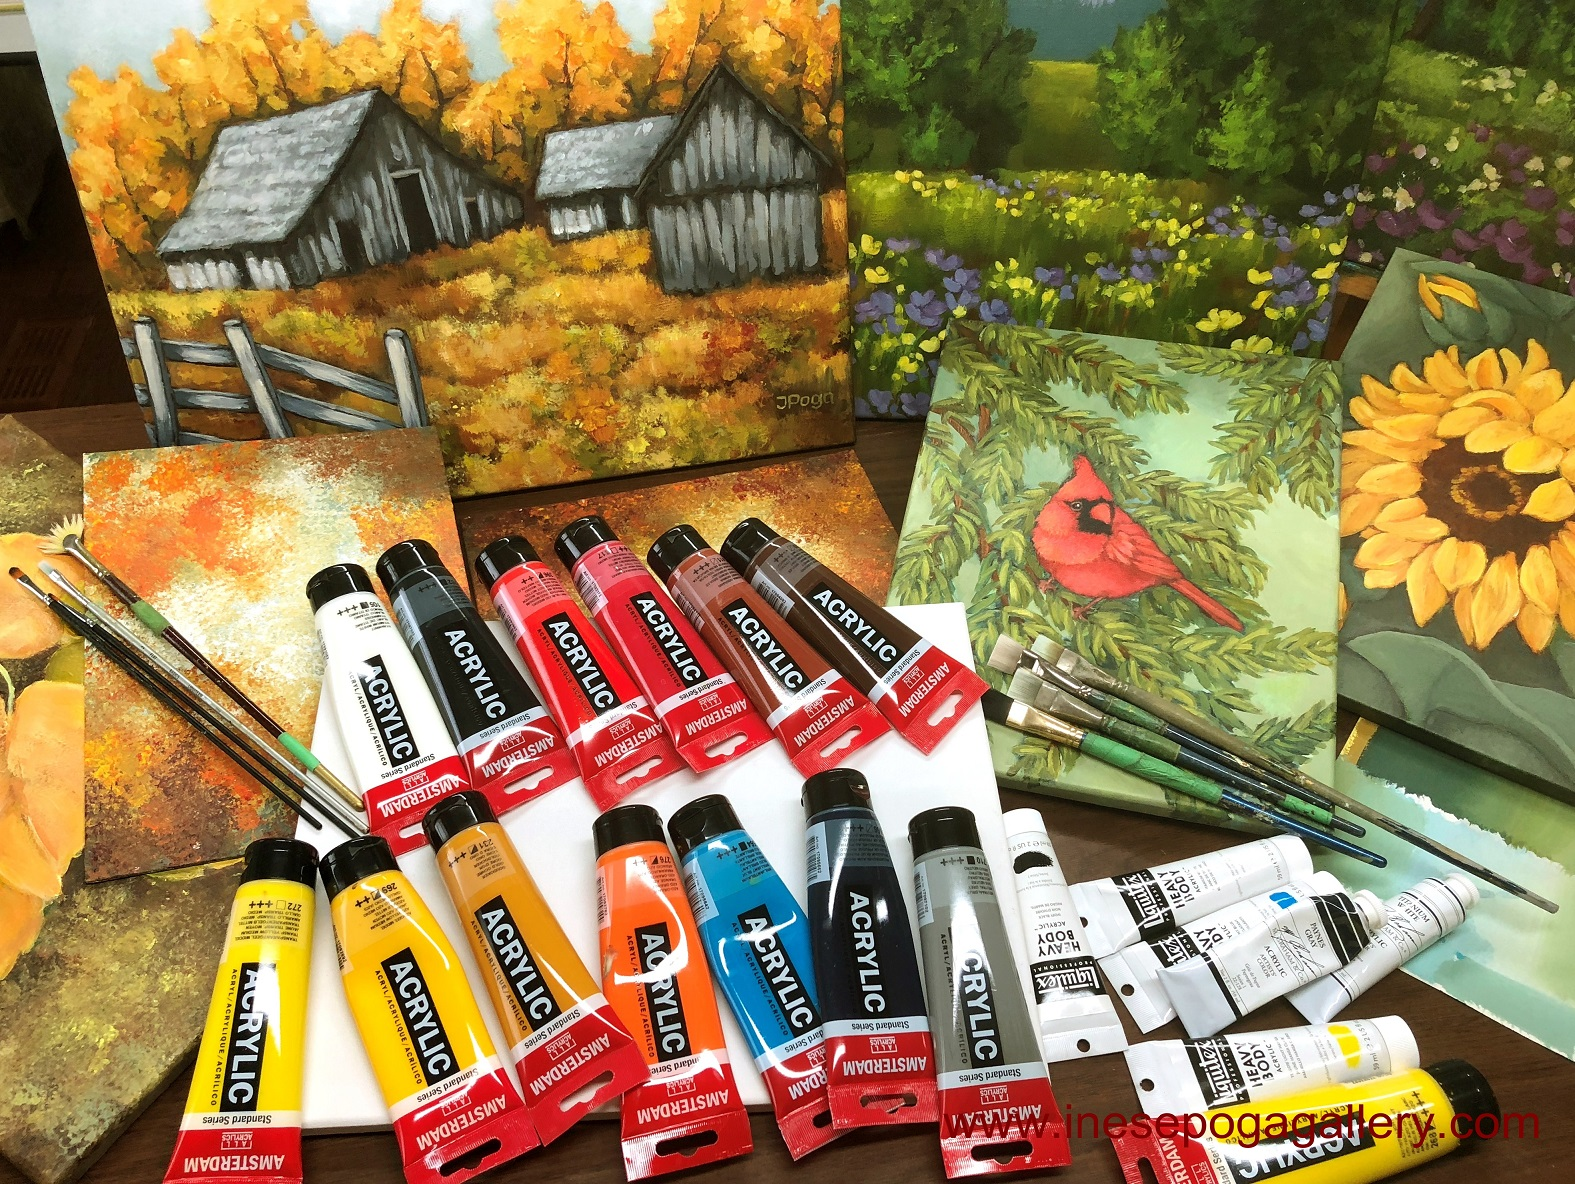 Acrylic painting supplies for art classes